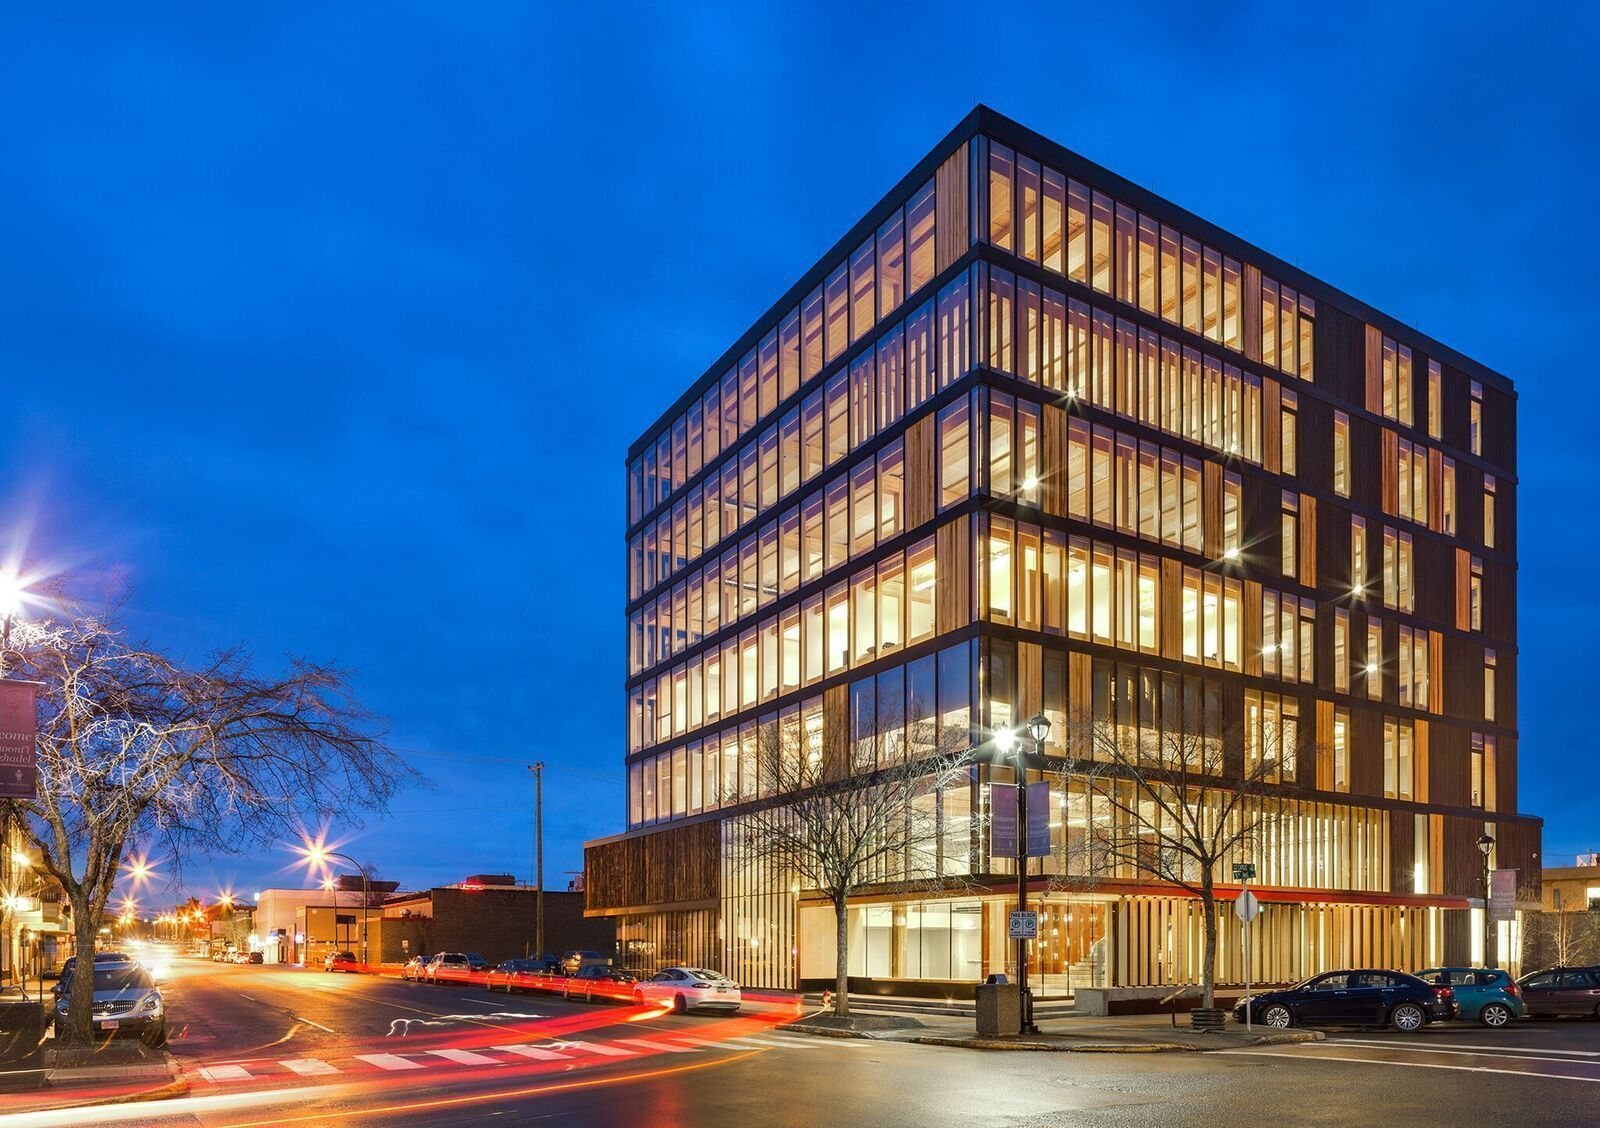 wooden office buildings. Michael Green Architecture\u0027s Wood Innovation Design Centre (WIDC) Is A The World\u0027s Largest Wooden Office Building, And Model For All-timber Construction. Buildings L